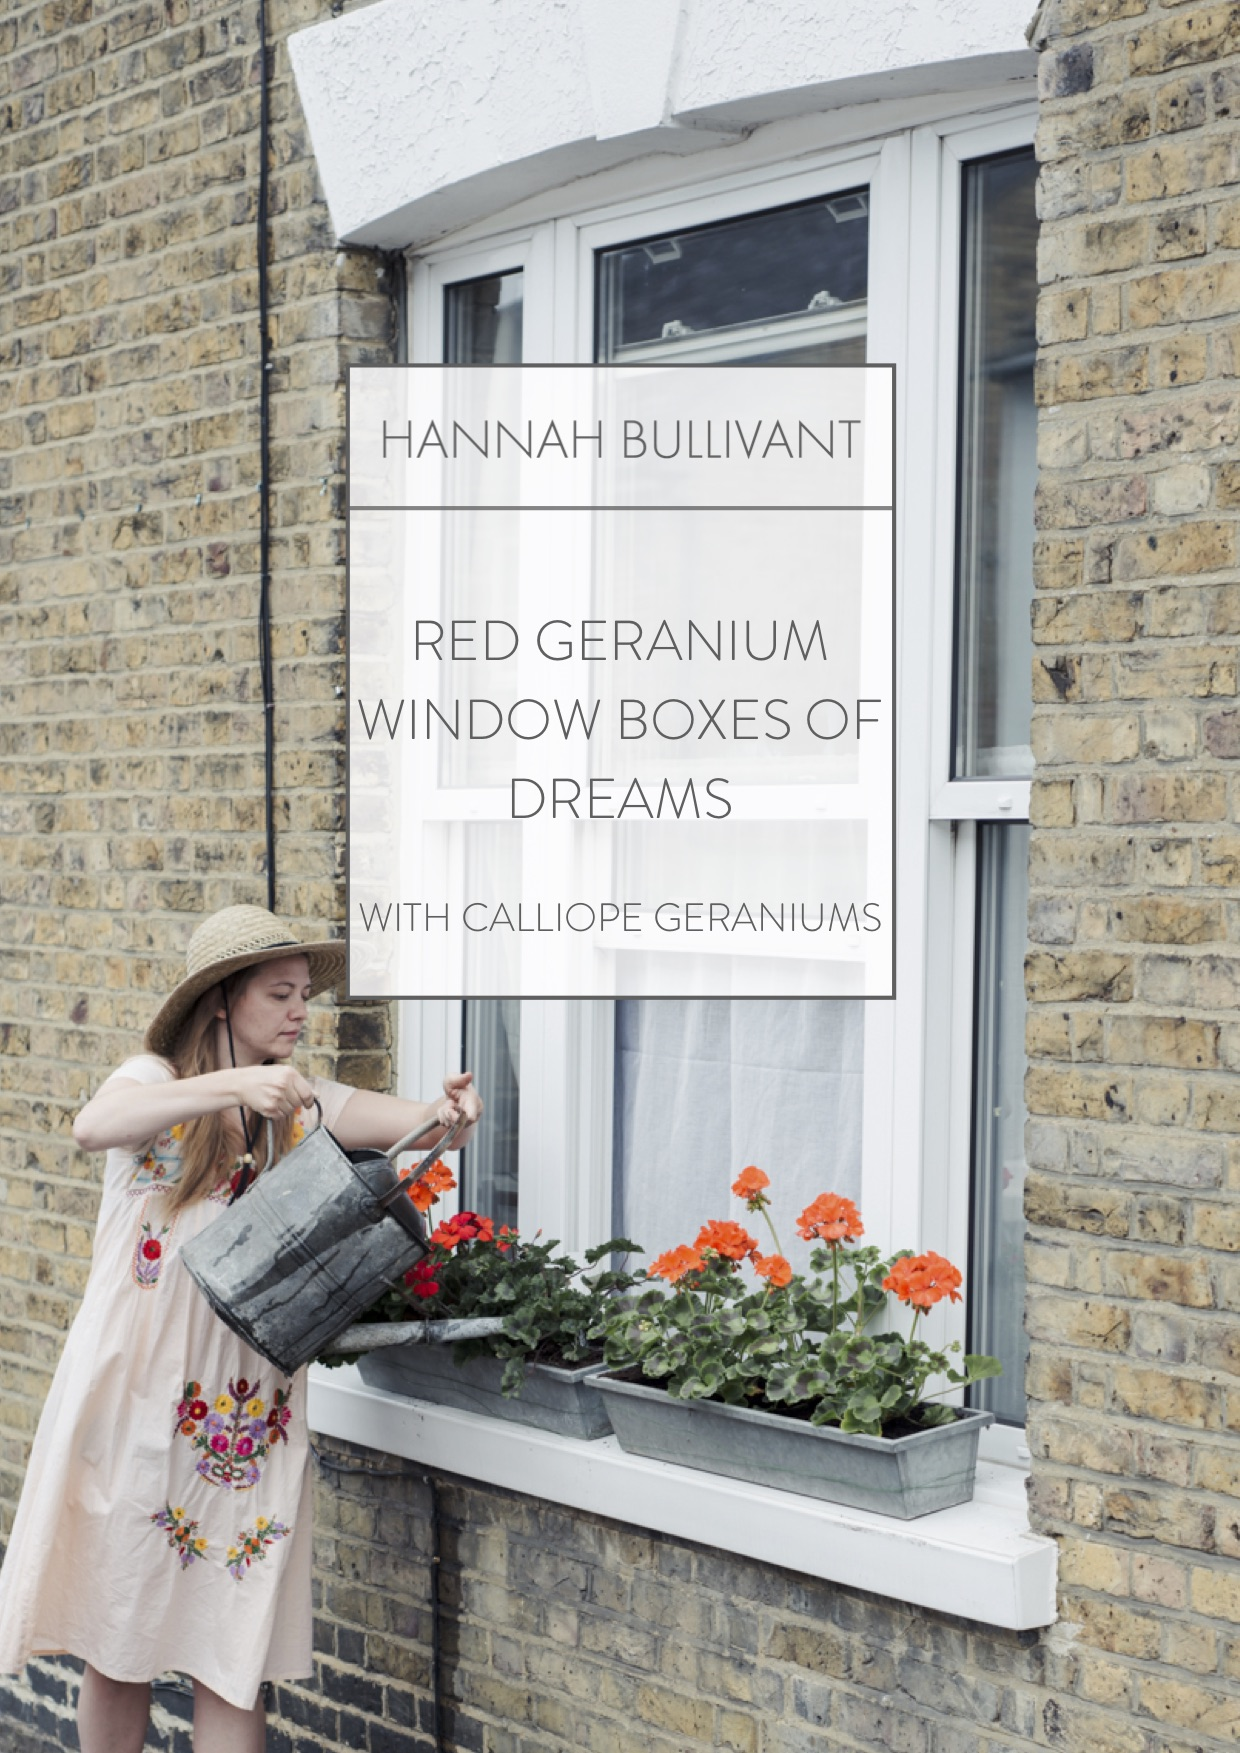 How to plant Red Geranium window boxes of dreams!